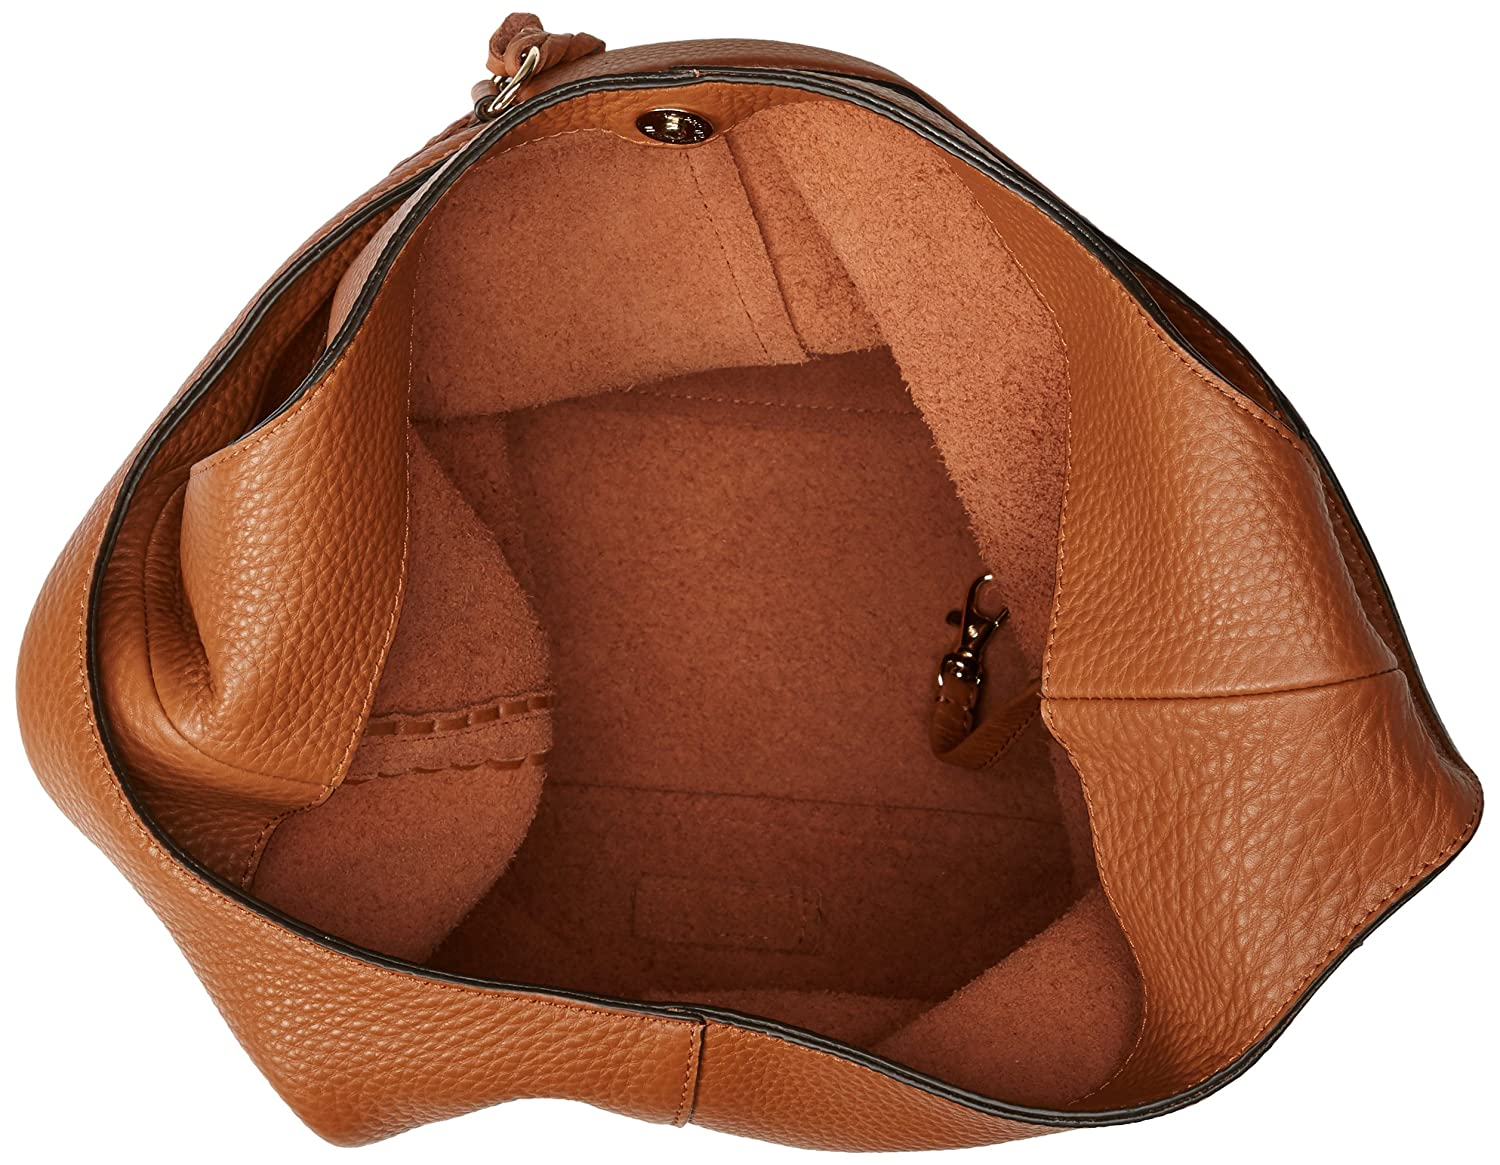 29b2e36b24 Amazon.com  Rebecca Minkoff Unlined Slouchy Hobo with Whipstich ...